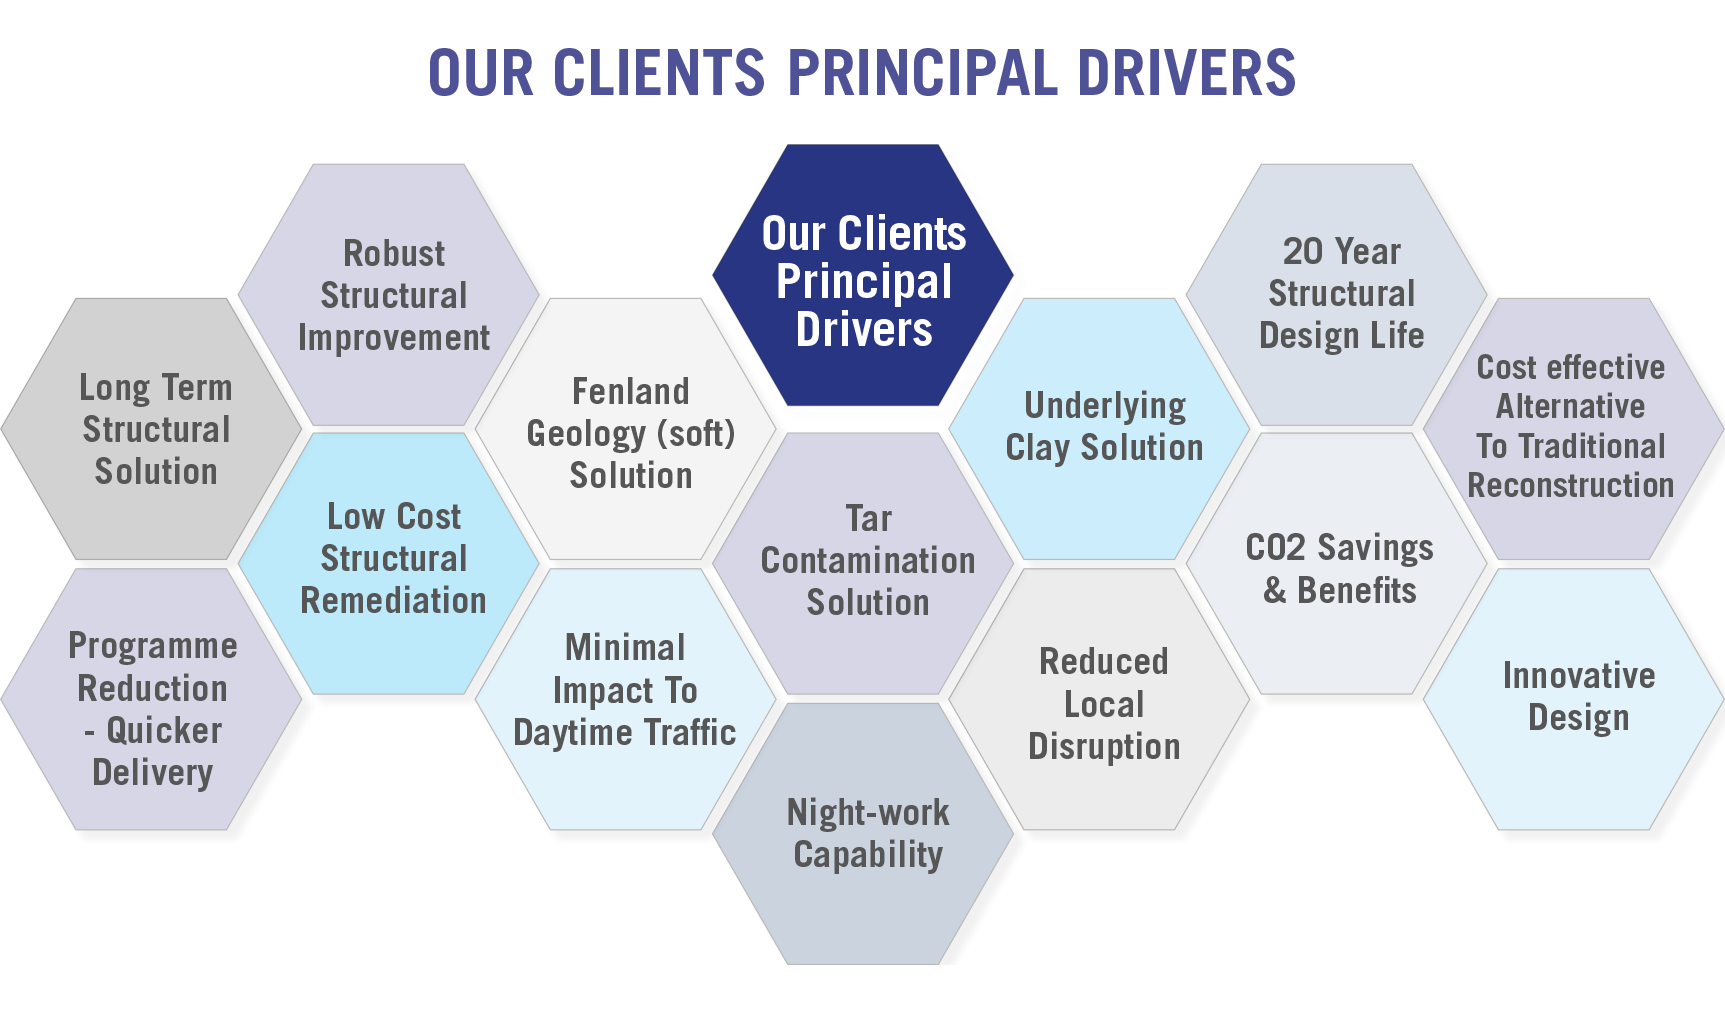 Our Clients Principle Drivers